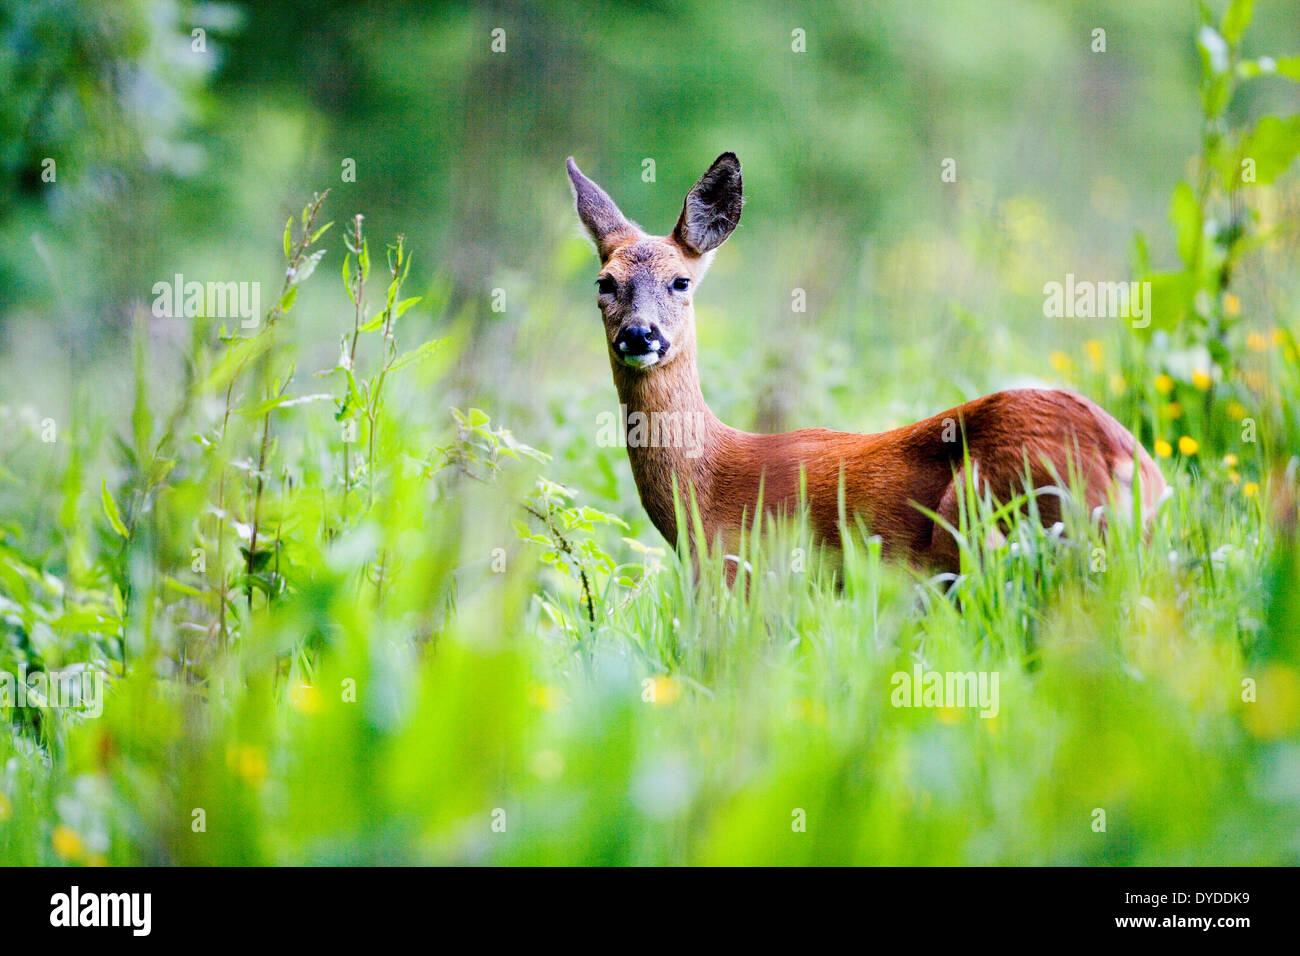 A Roe Deer in the undergrowth. Stock Photo